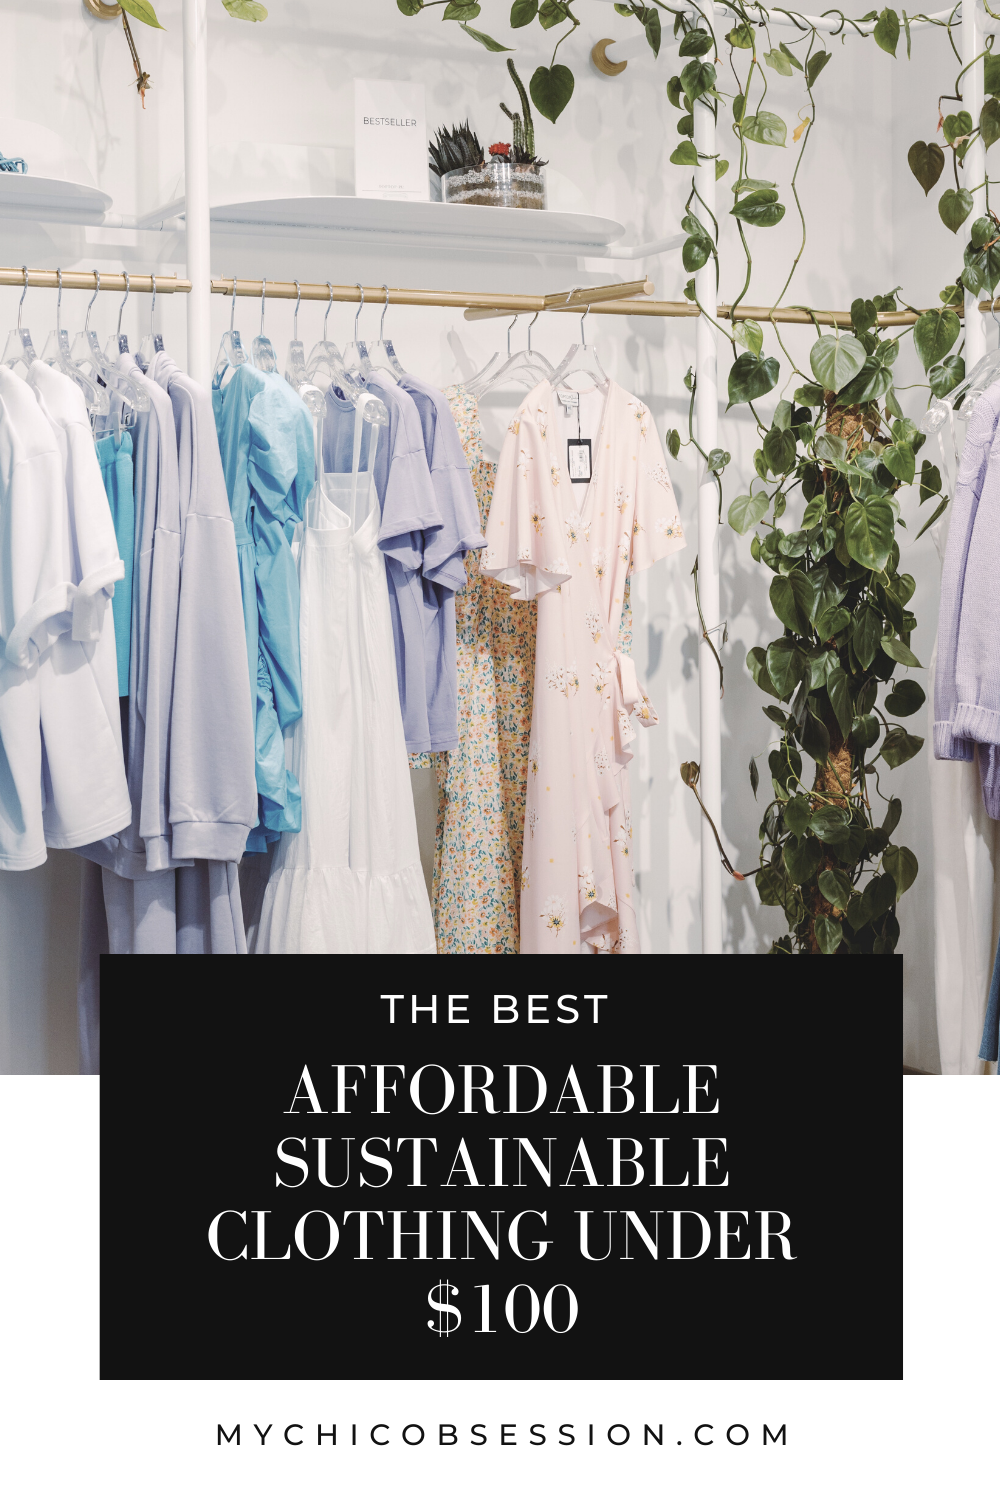 Affordable sustainable clothing under $100